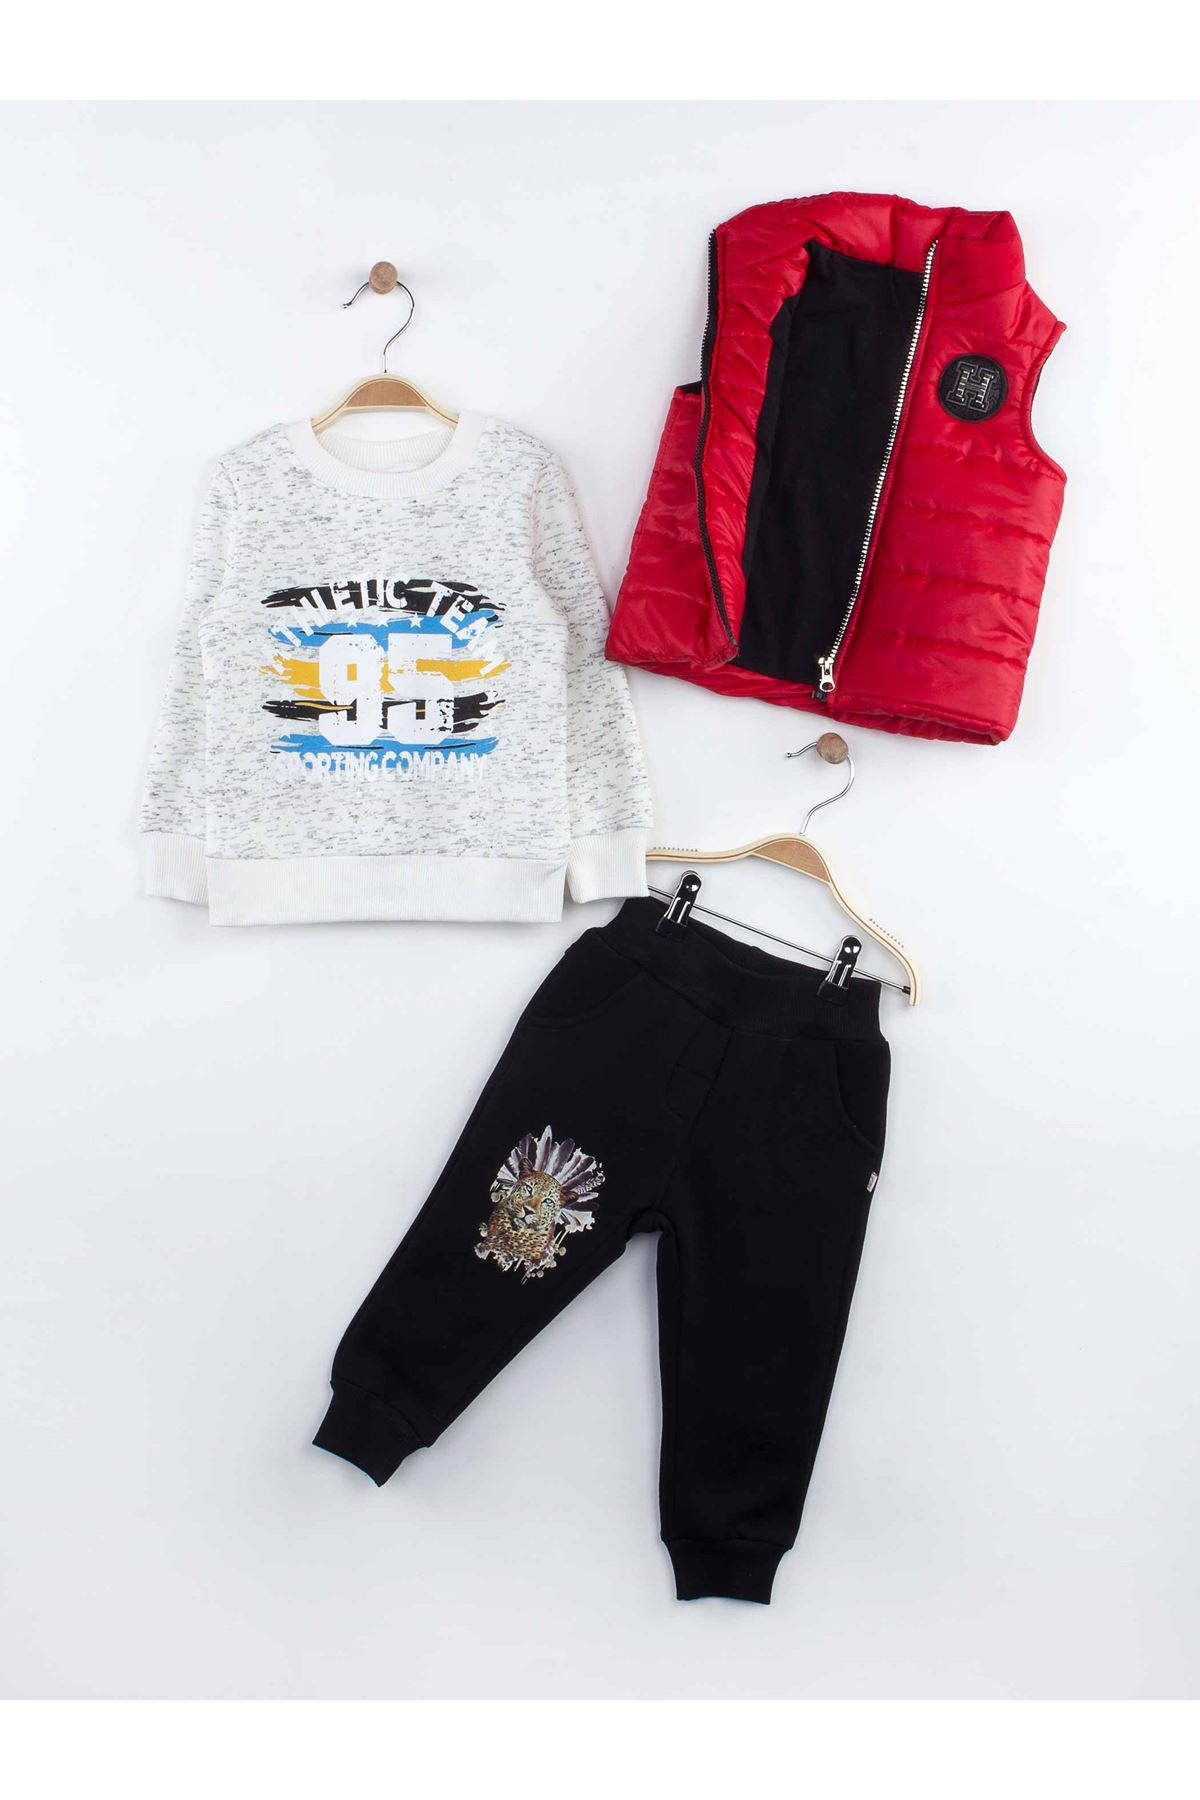 Red boy 3 piece suit sweatpants sweat puffer vest model style seasonal cotton casual sports daily tracksuit set model